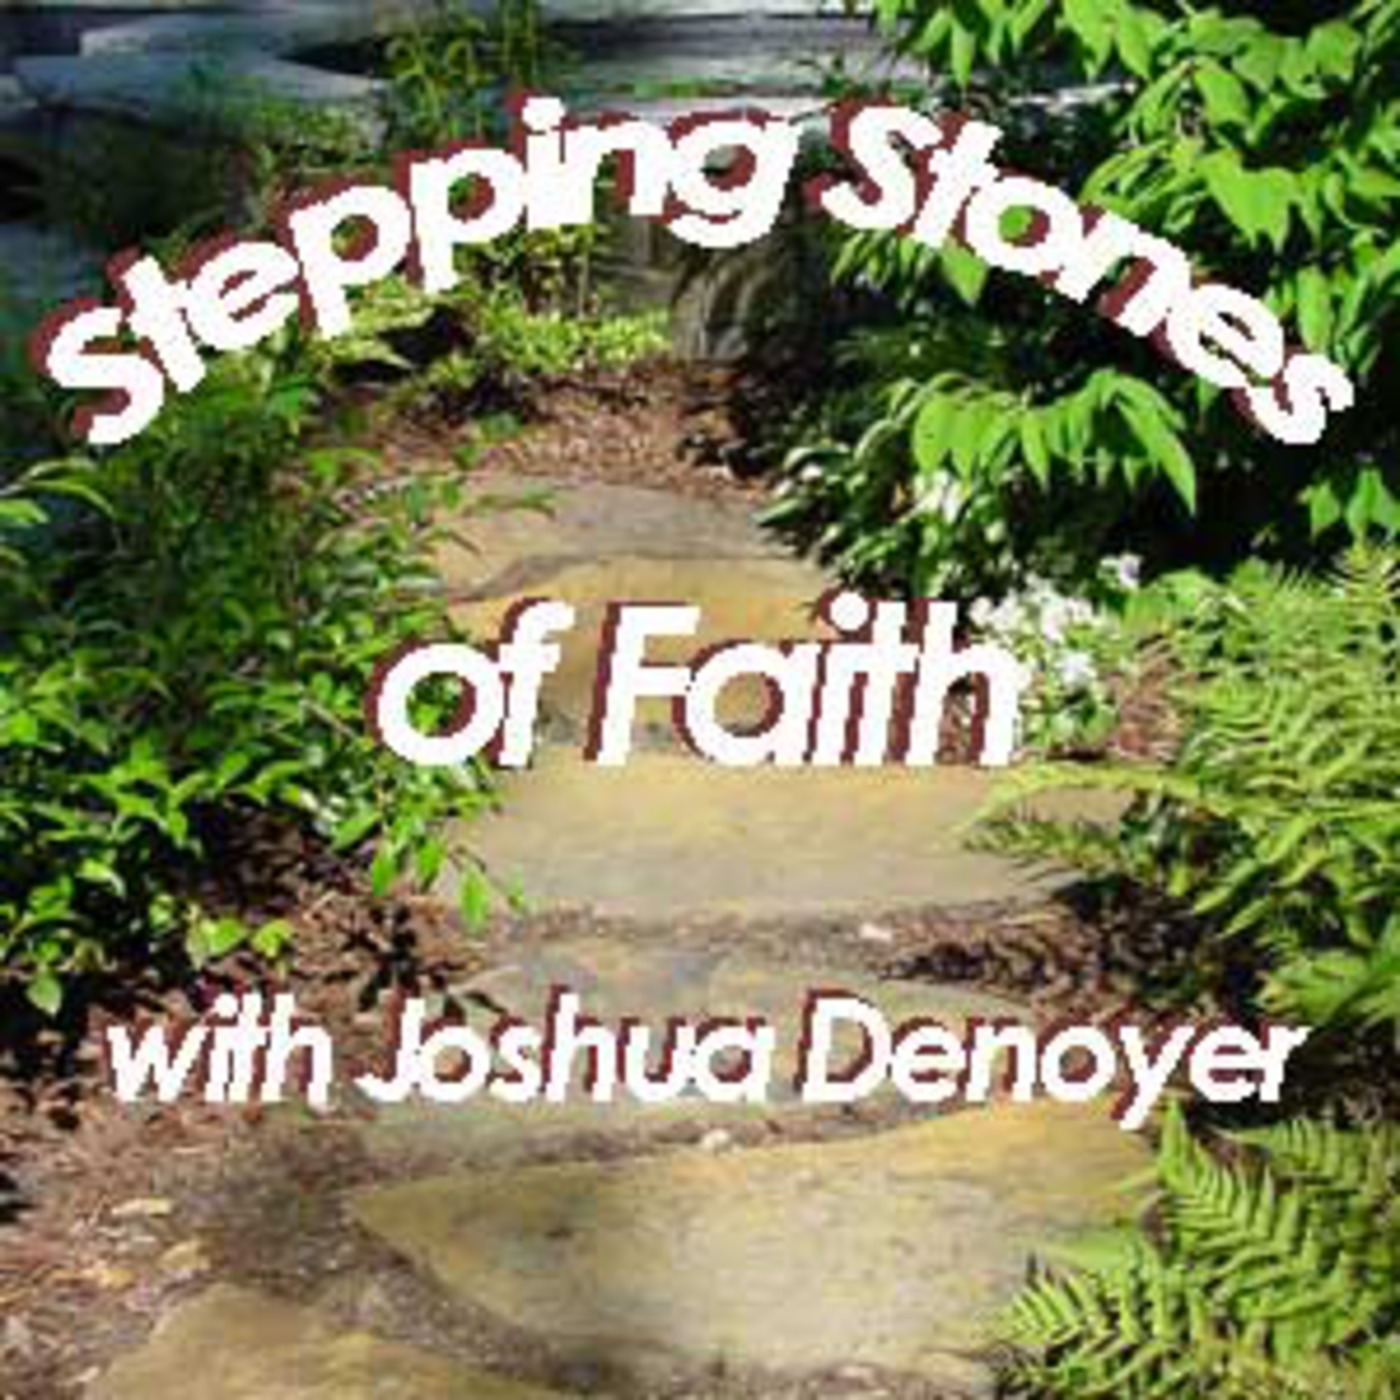 Stepping Stones of Faith